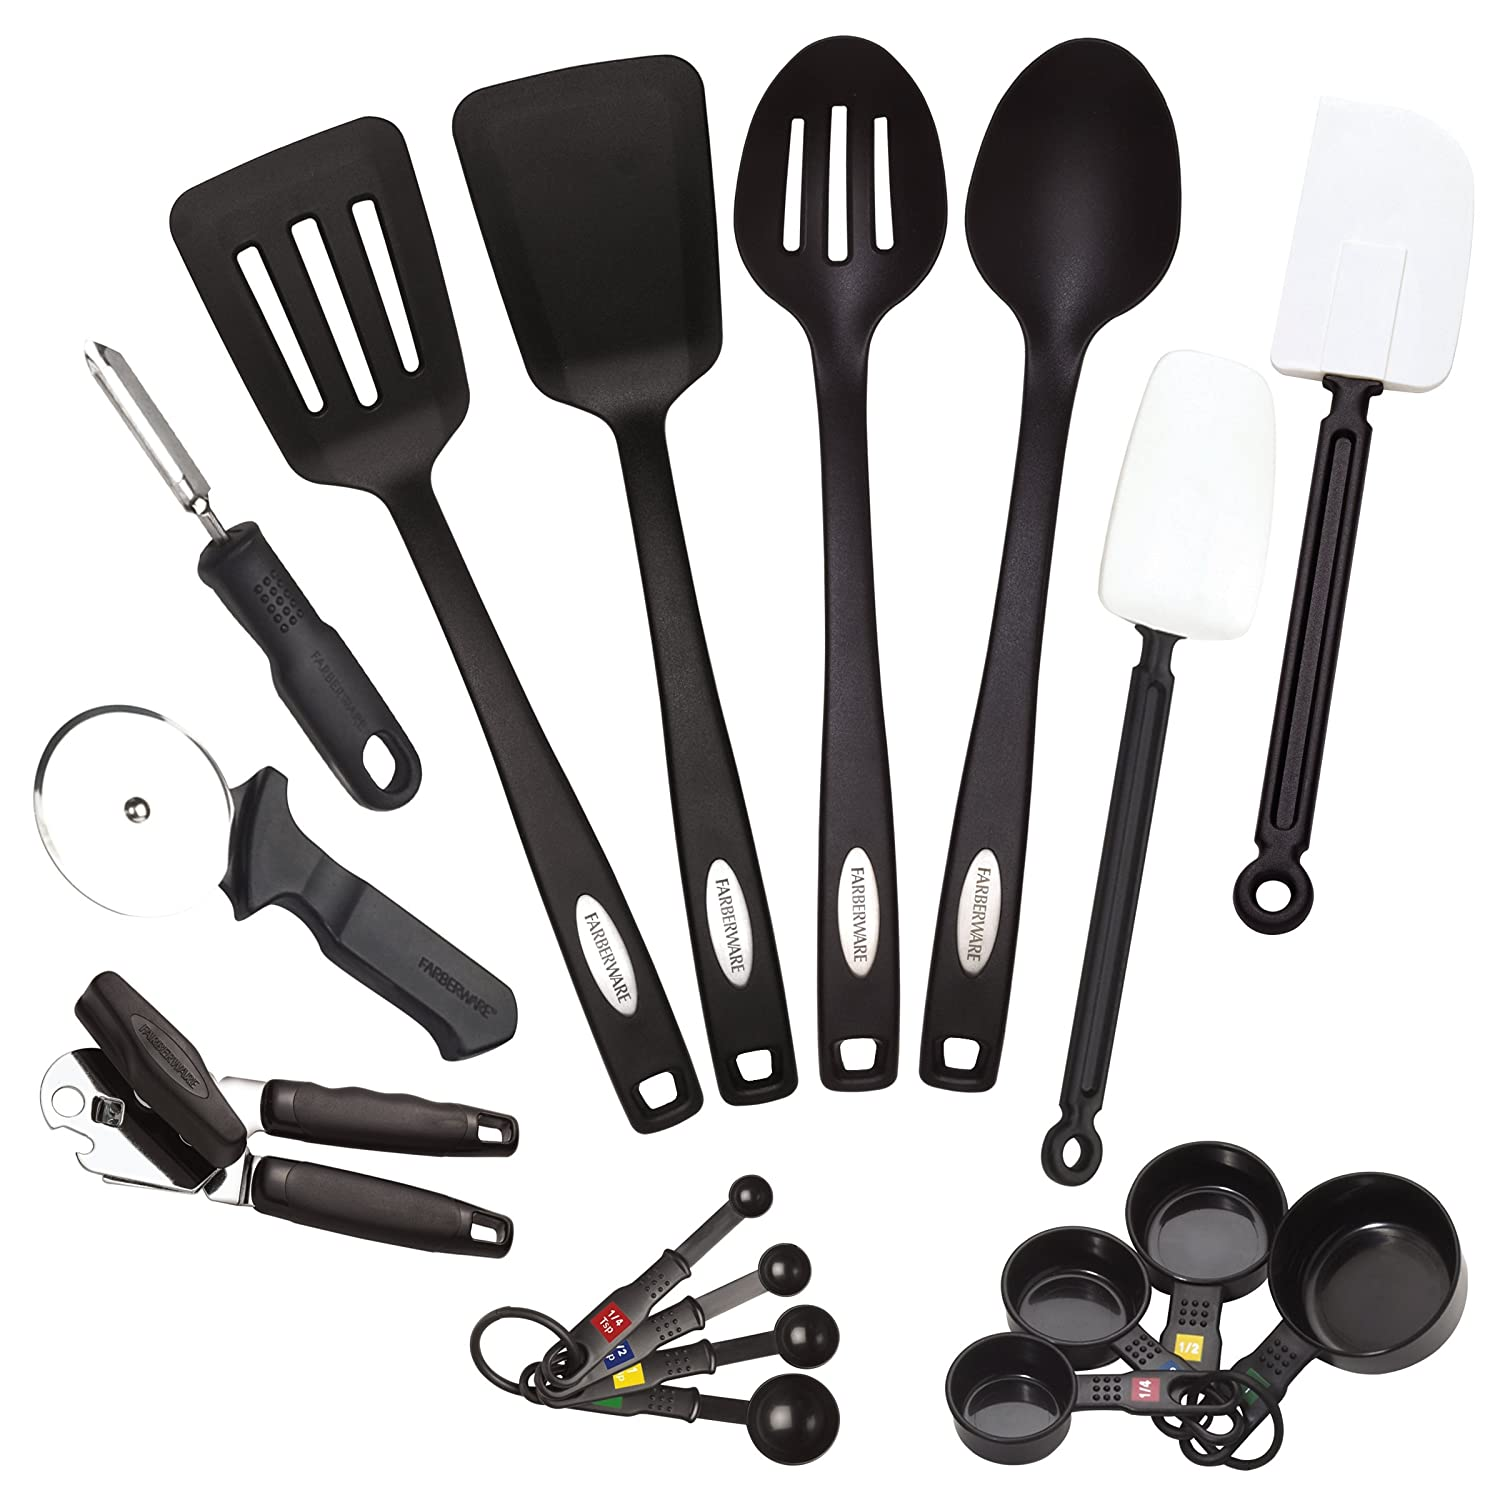 Amazon.com: Farberware 5080445 Classic 17-Piece Tool and Gadget Set ...